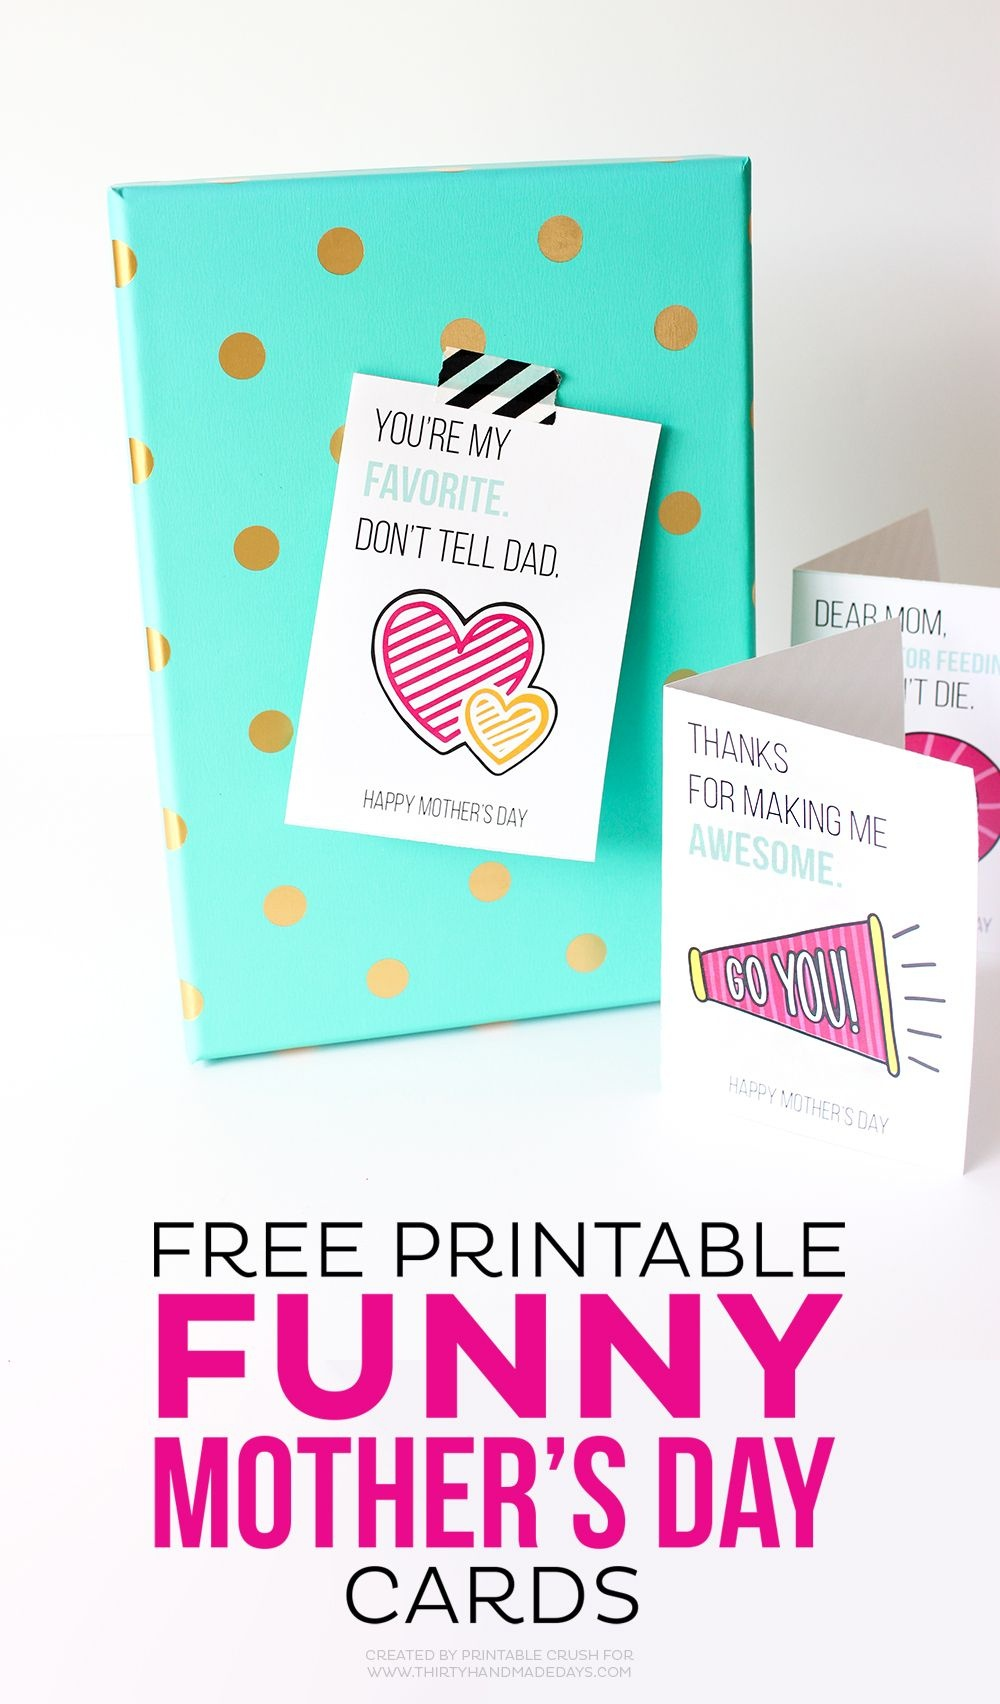 Printable Funny Mother's Day Cards | Art + Graphic Design Bloggers - Free Printable Funny Mother's Day Cards